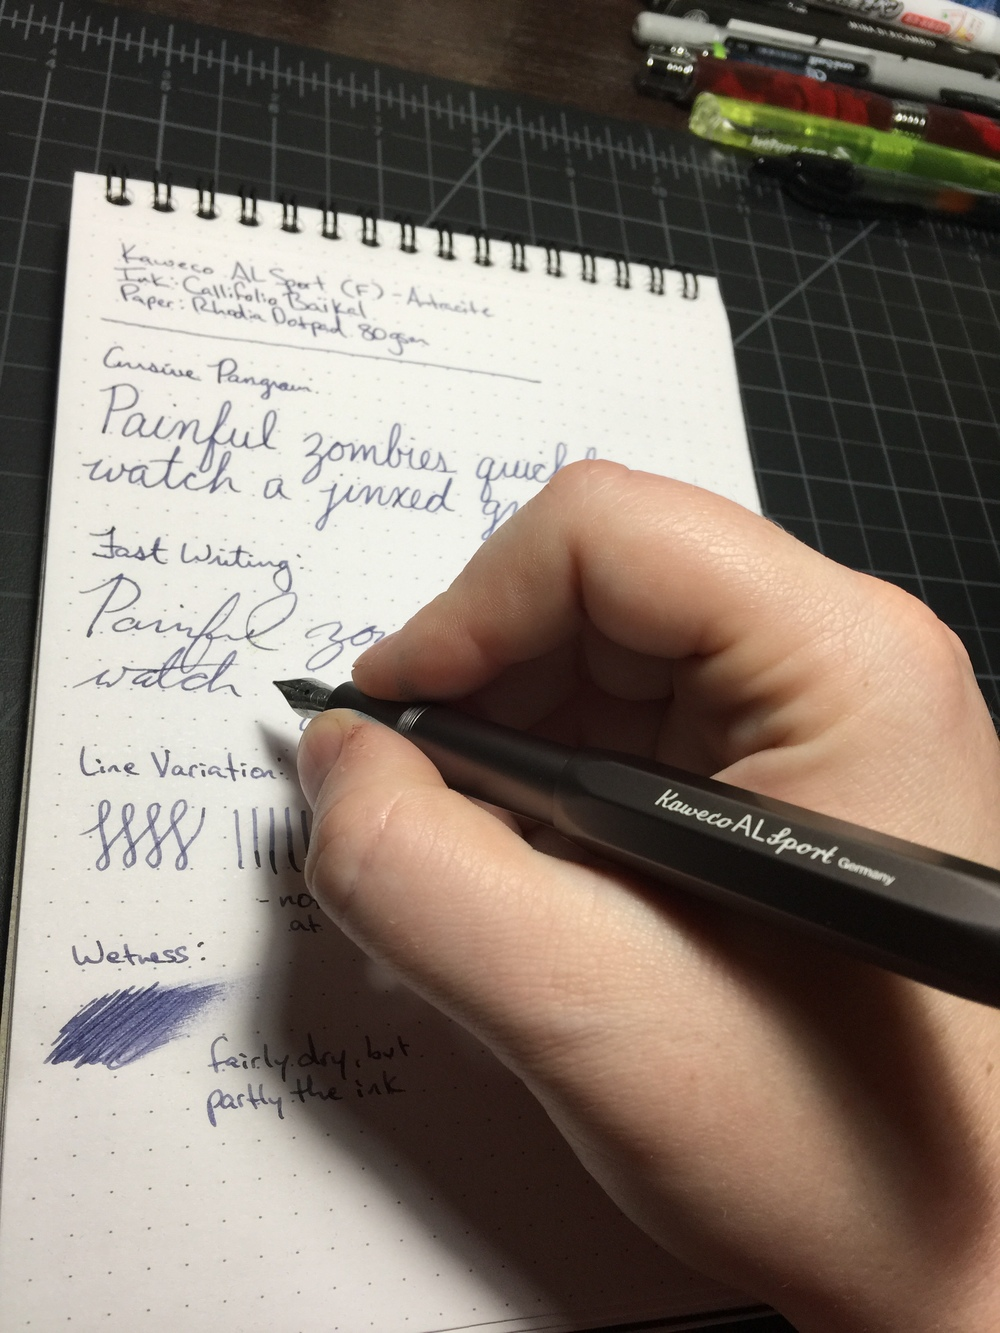 Kaweco-ALSport-posted